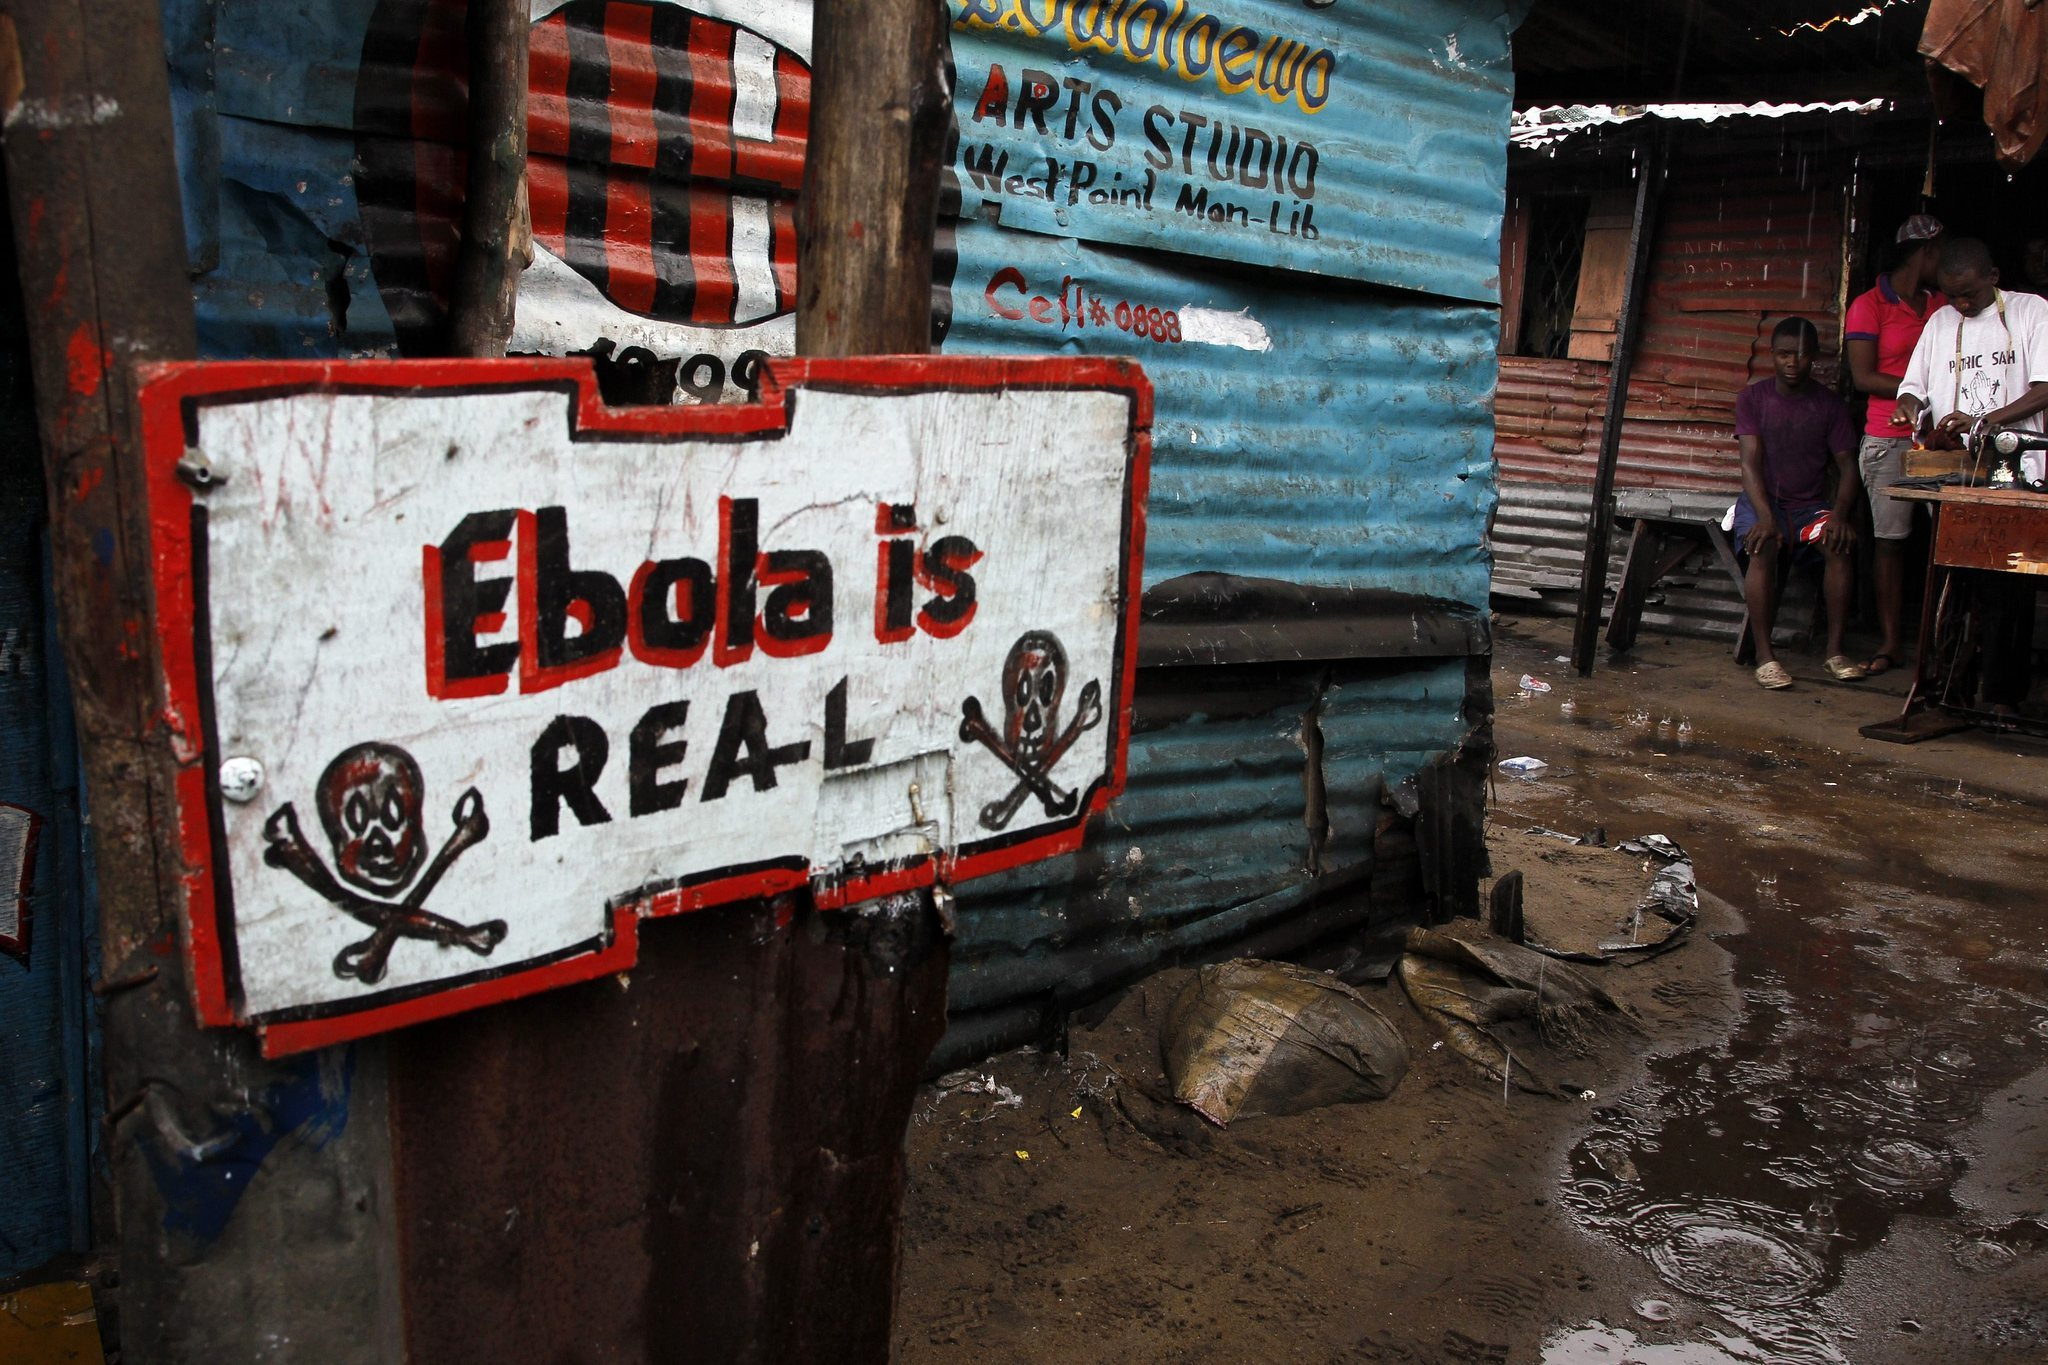 epa04417493 An Ebola sign placed infront of a home in West Point slum area of Monrovia, Liberia, 25 September 2014. Figures released from the United Nations World Health Organization indicate 2917 West Africans have died from the Ebola virus with Sierra Leone, Liberia and Guinea the worst affected.  EPA/AHMED JALLANZO ** Usable by LA, CT and MoD ONLY **